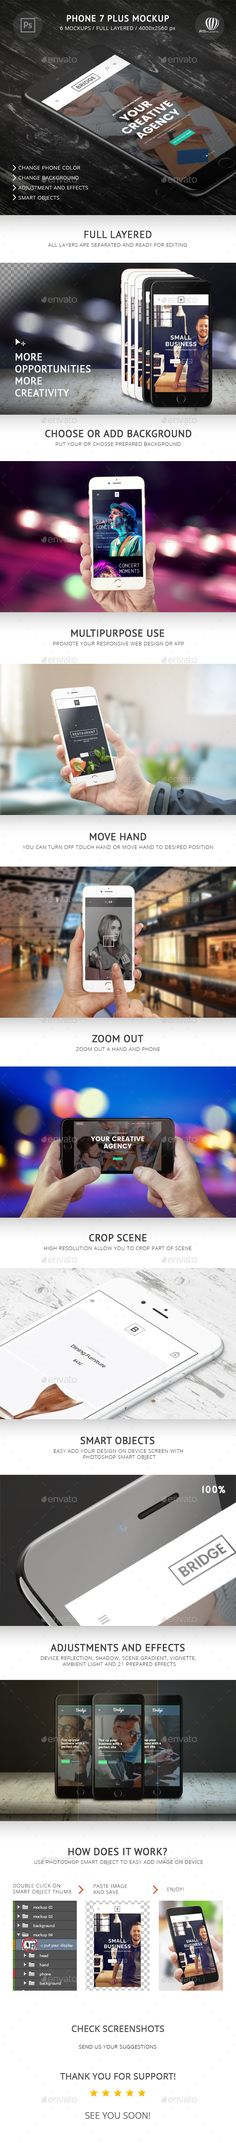 Phone 7 Plus Mockup by RSplaneta iPhone 7 Plus Mockup is Photoshop template of your favorite phone which promotes better operative characteristics of this mobile p